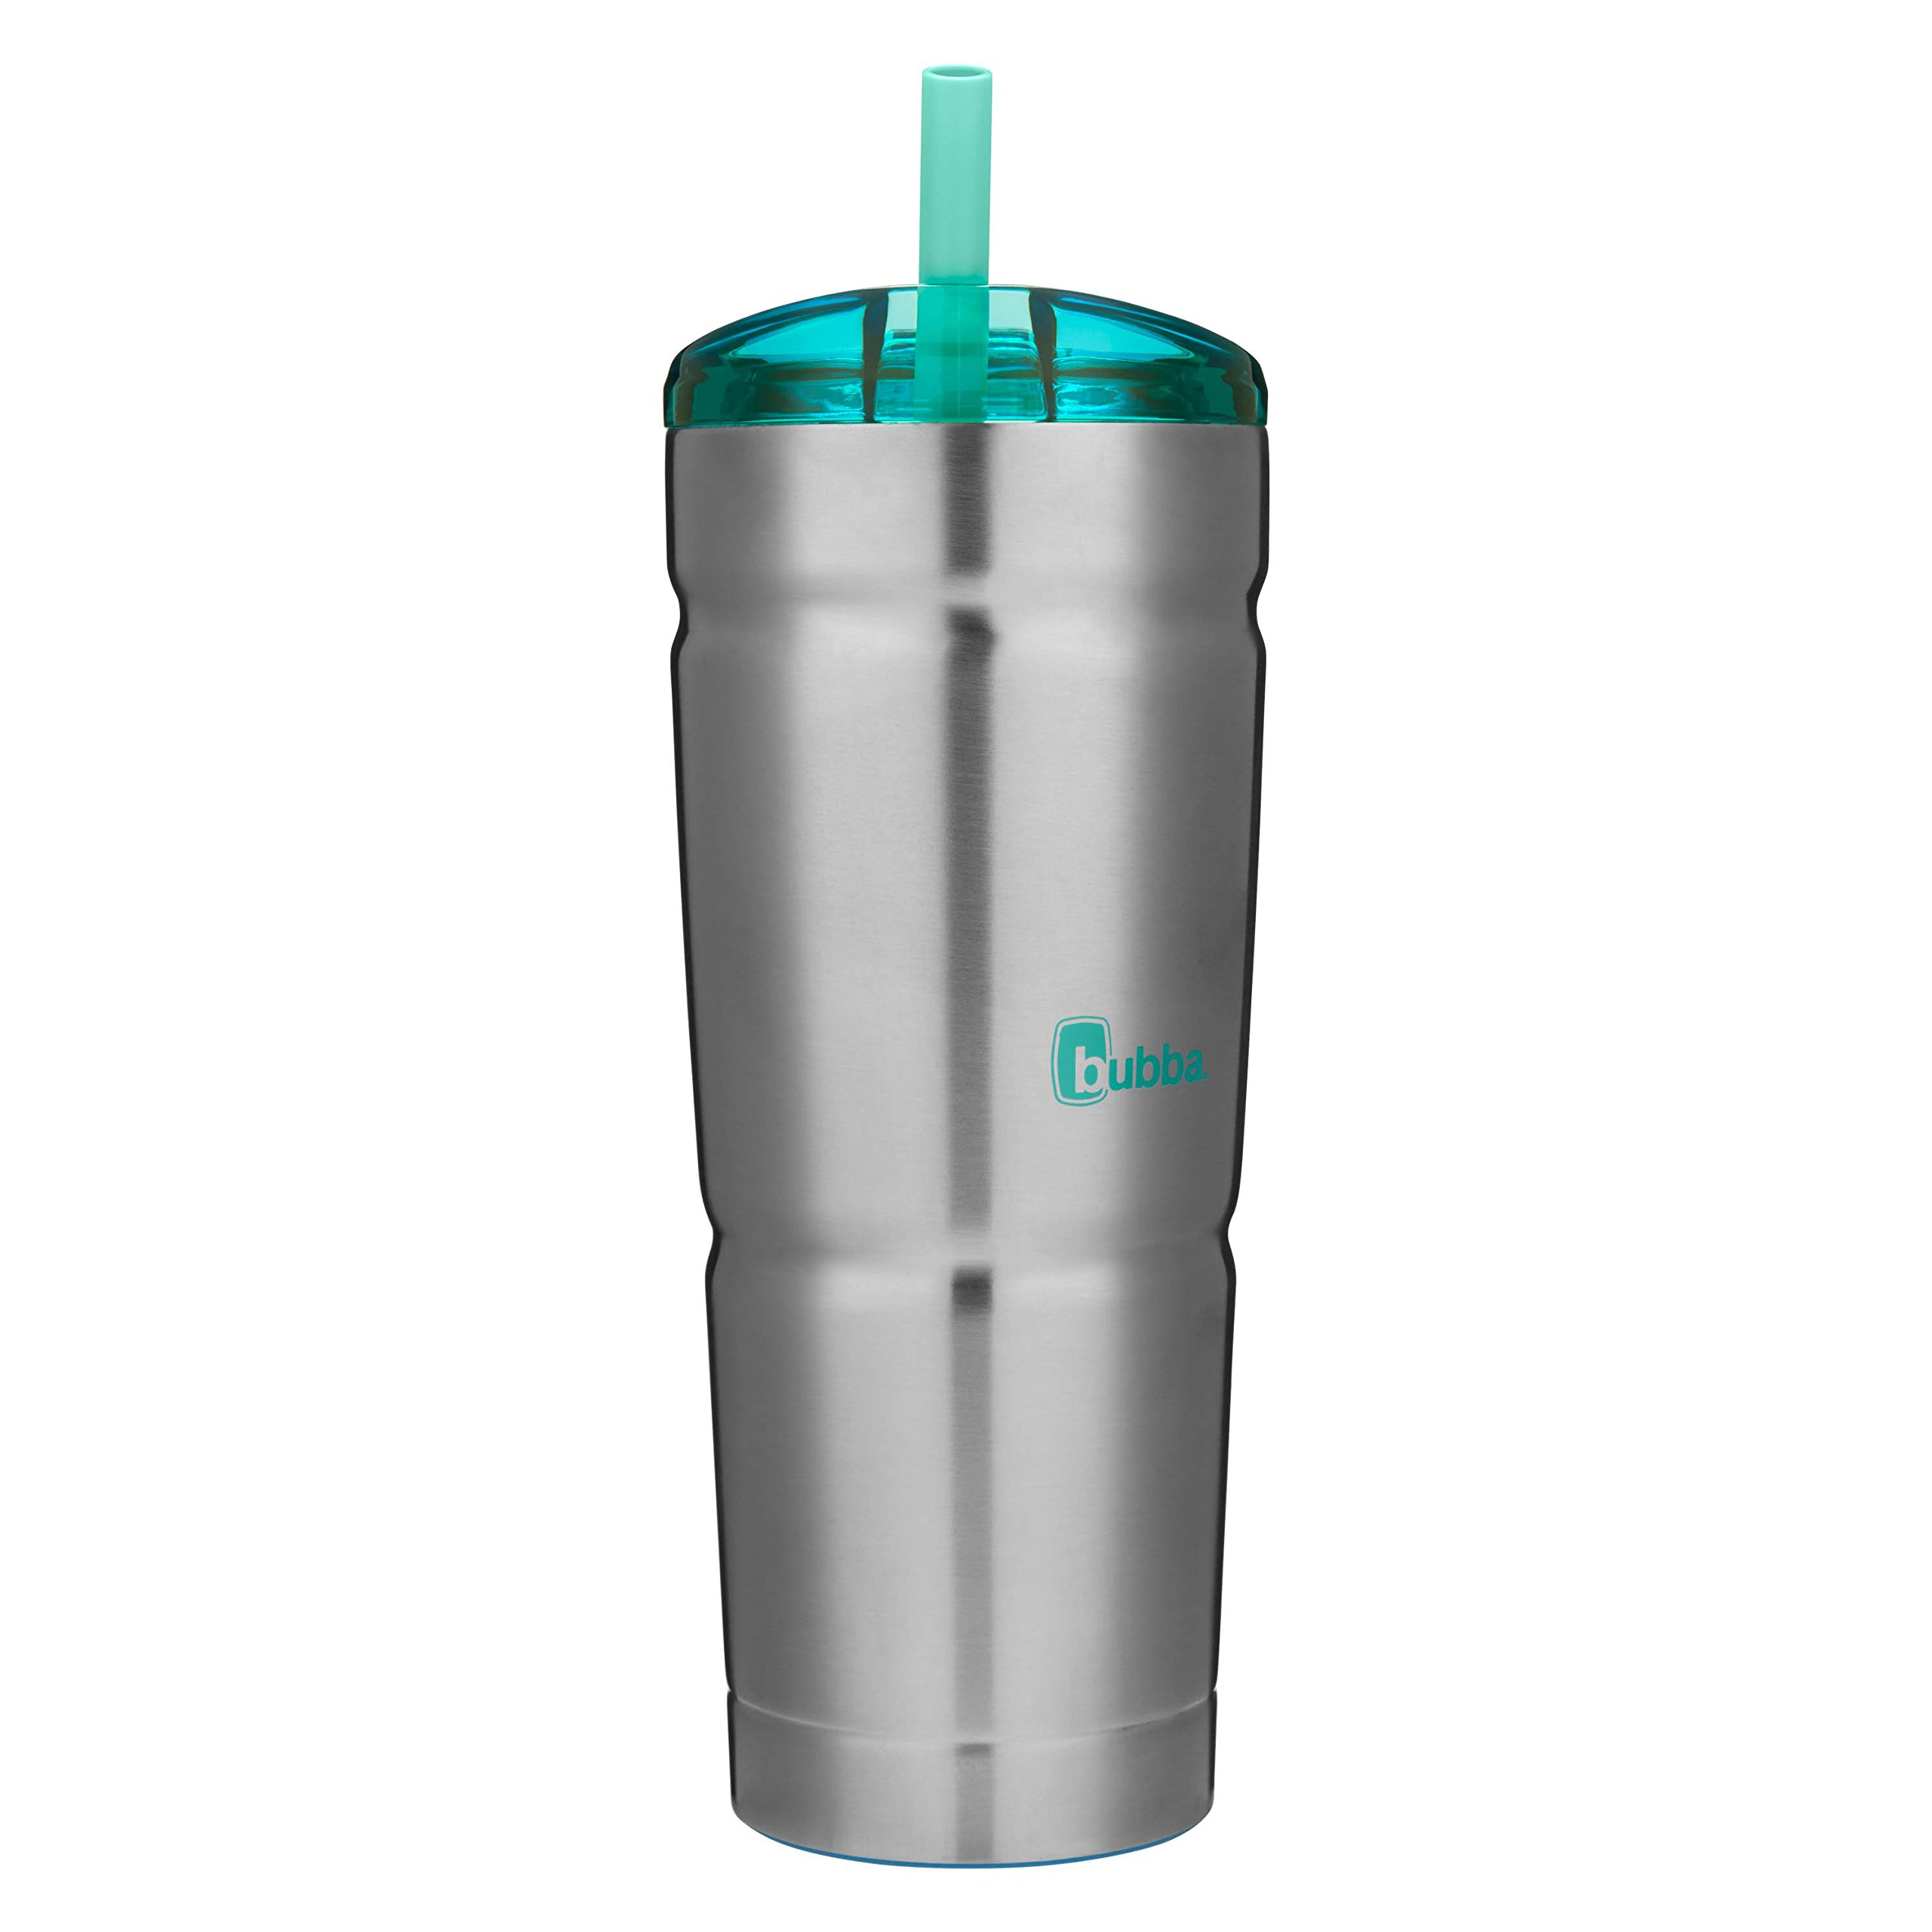 bubba Straw Envy Vacuum-Insulated Stainless Steel Tumbler, 24 oz., Island Teal Lid by bubba